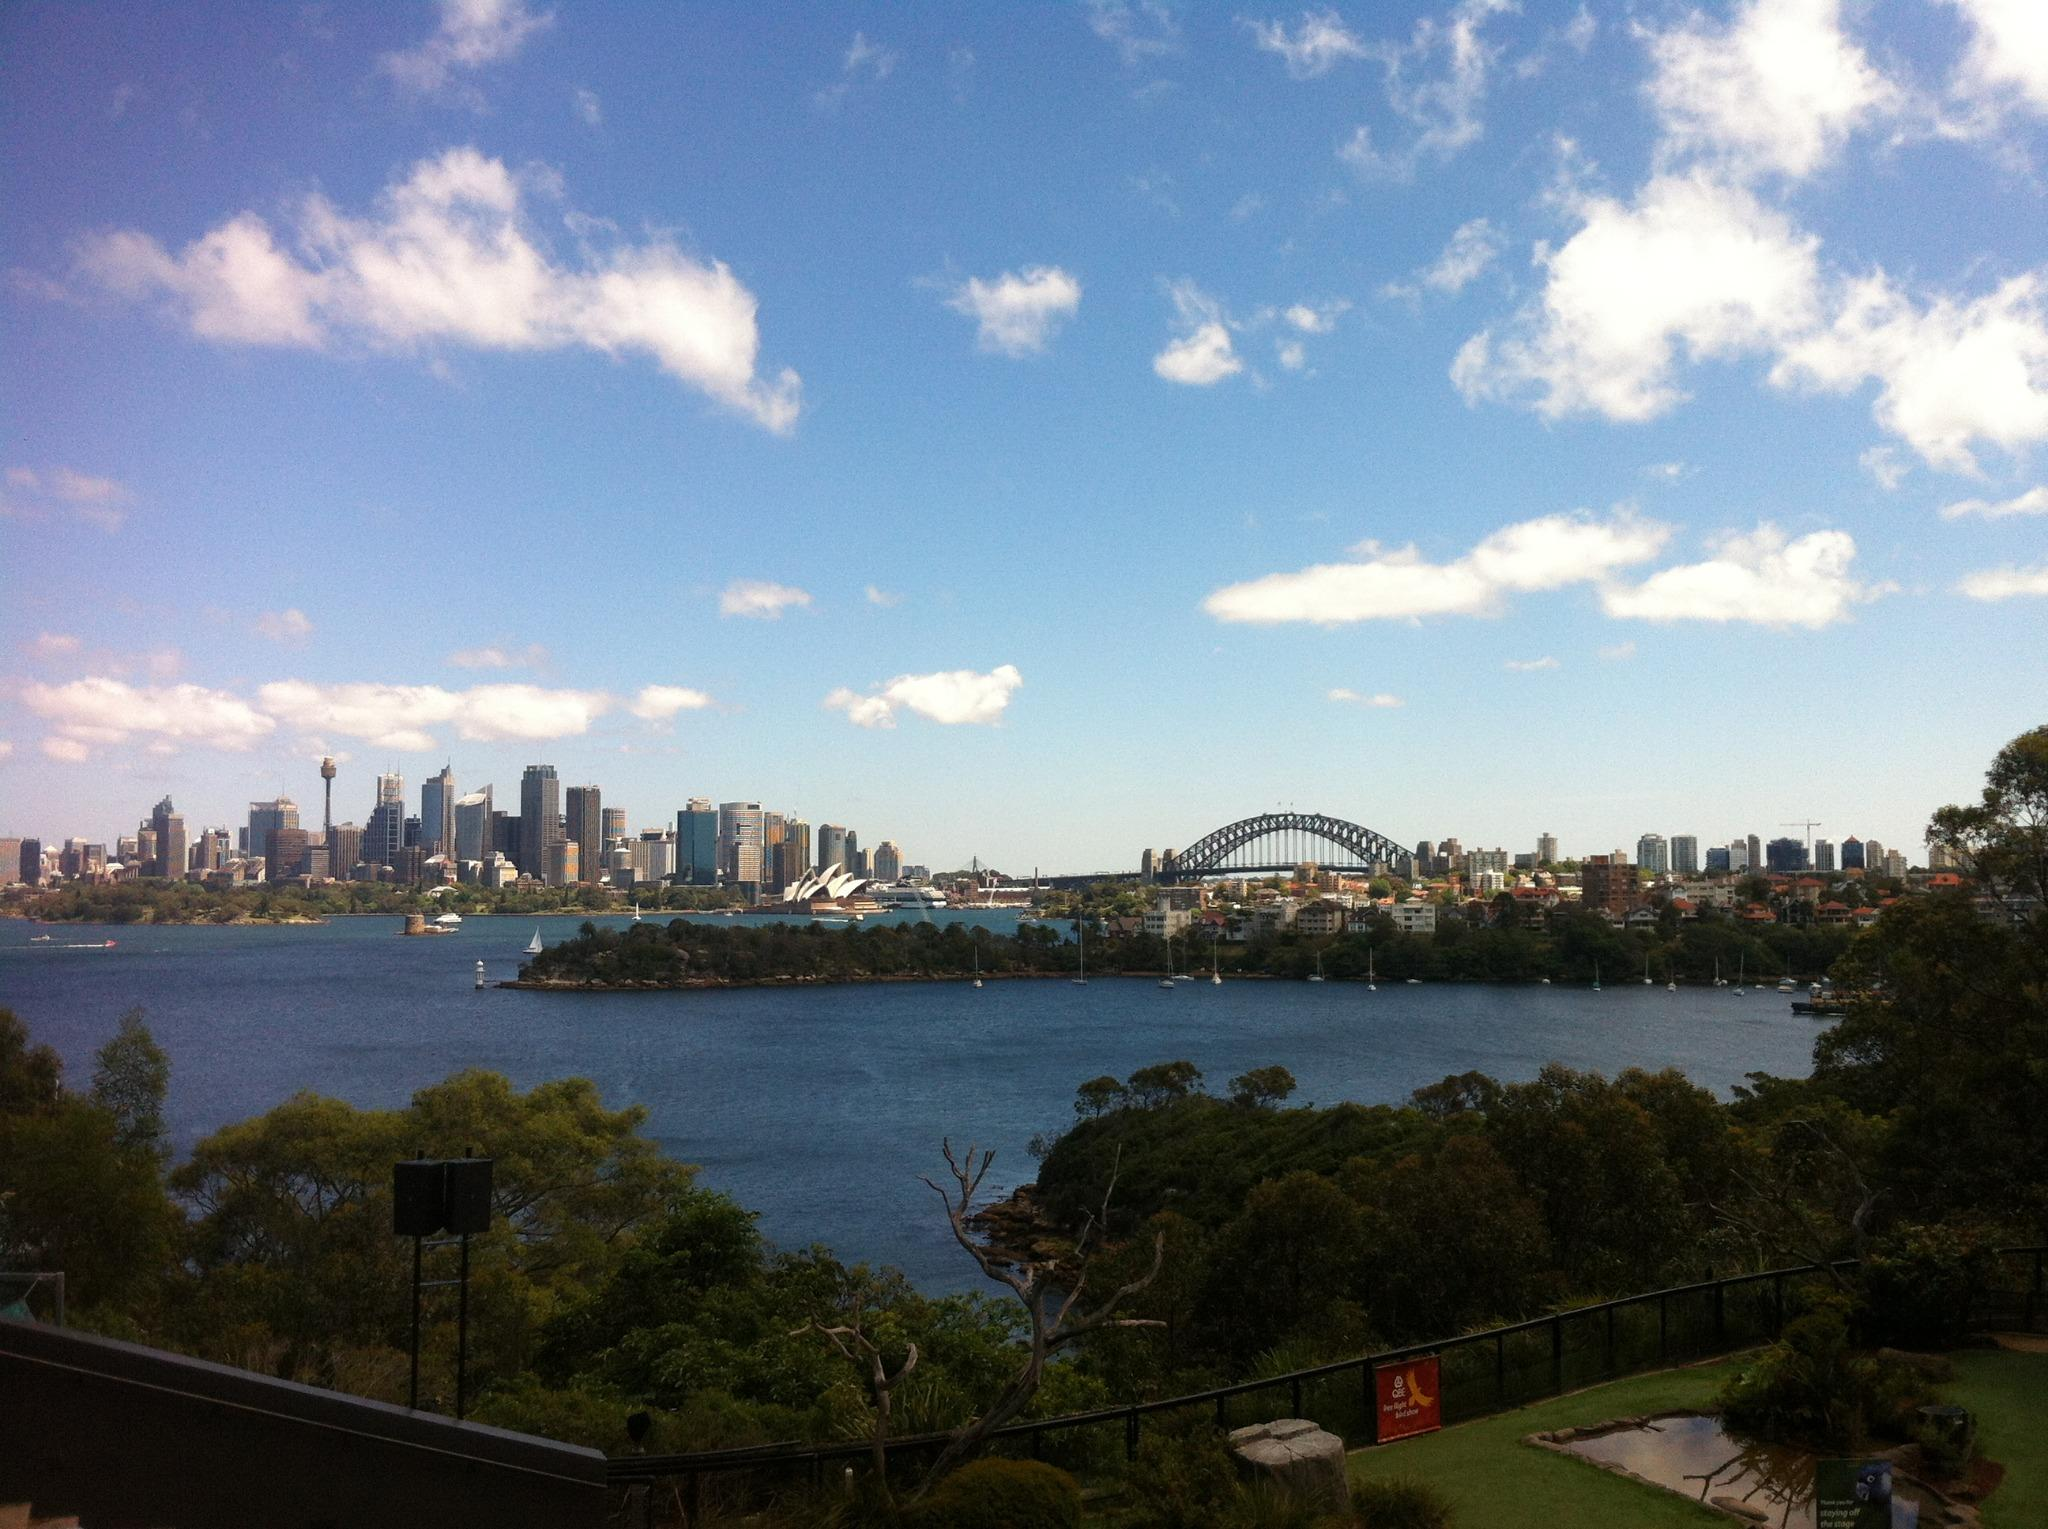 RT @VictorDipoli: @BudgetTravel Sydney one of the best cities i've ever been #YouHereNow #throwbackthursday http://t.co/dyEgTsDHjF